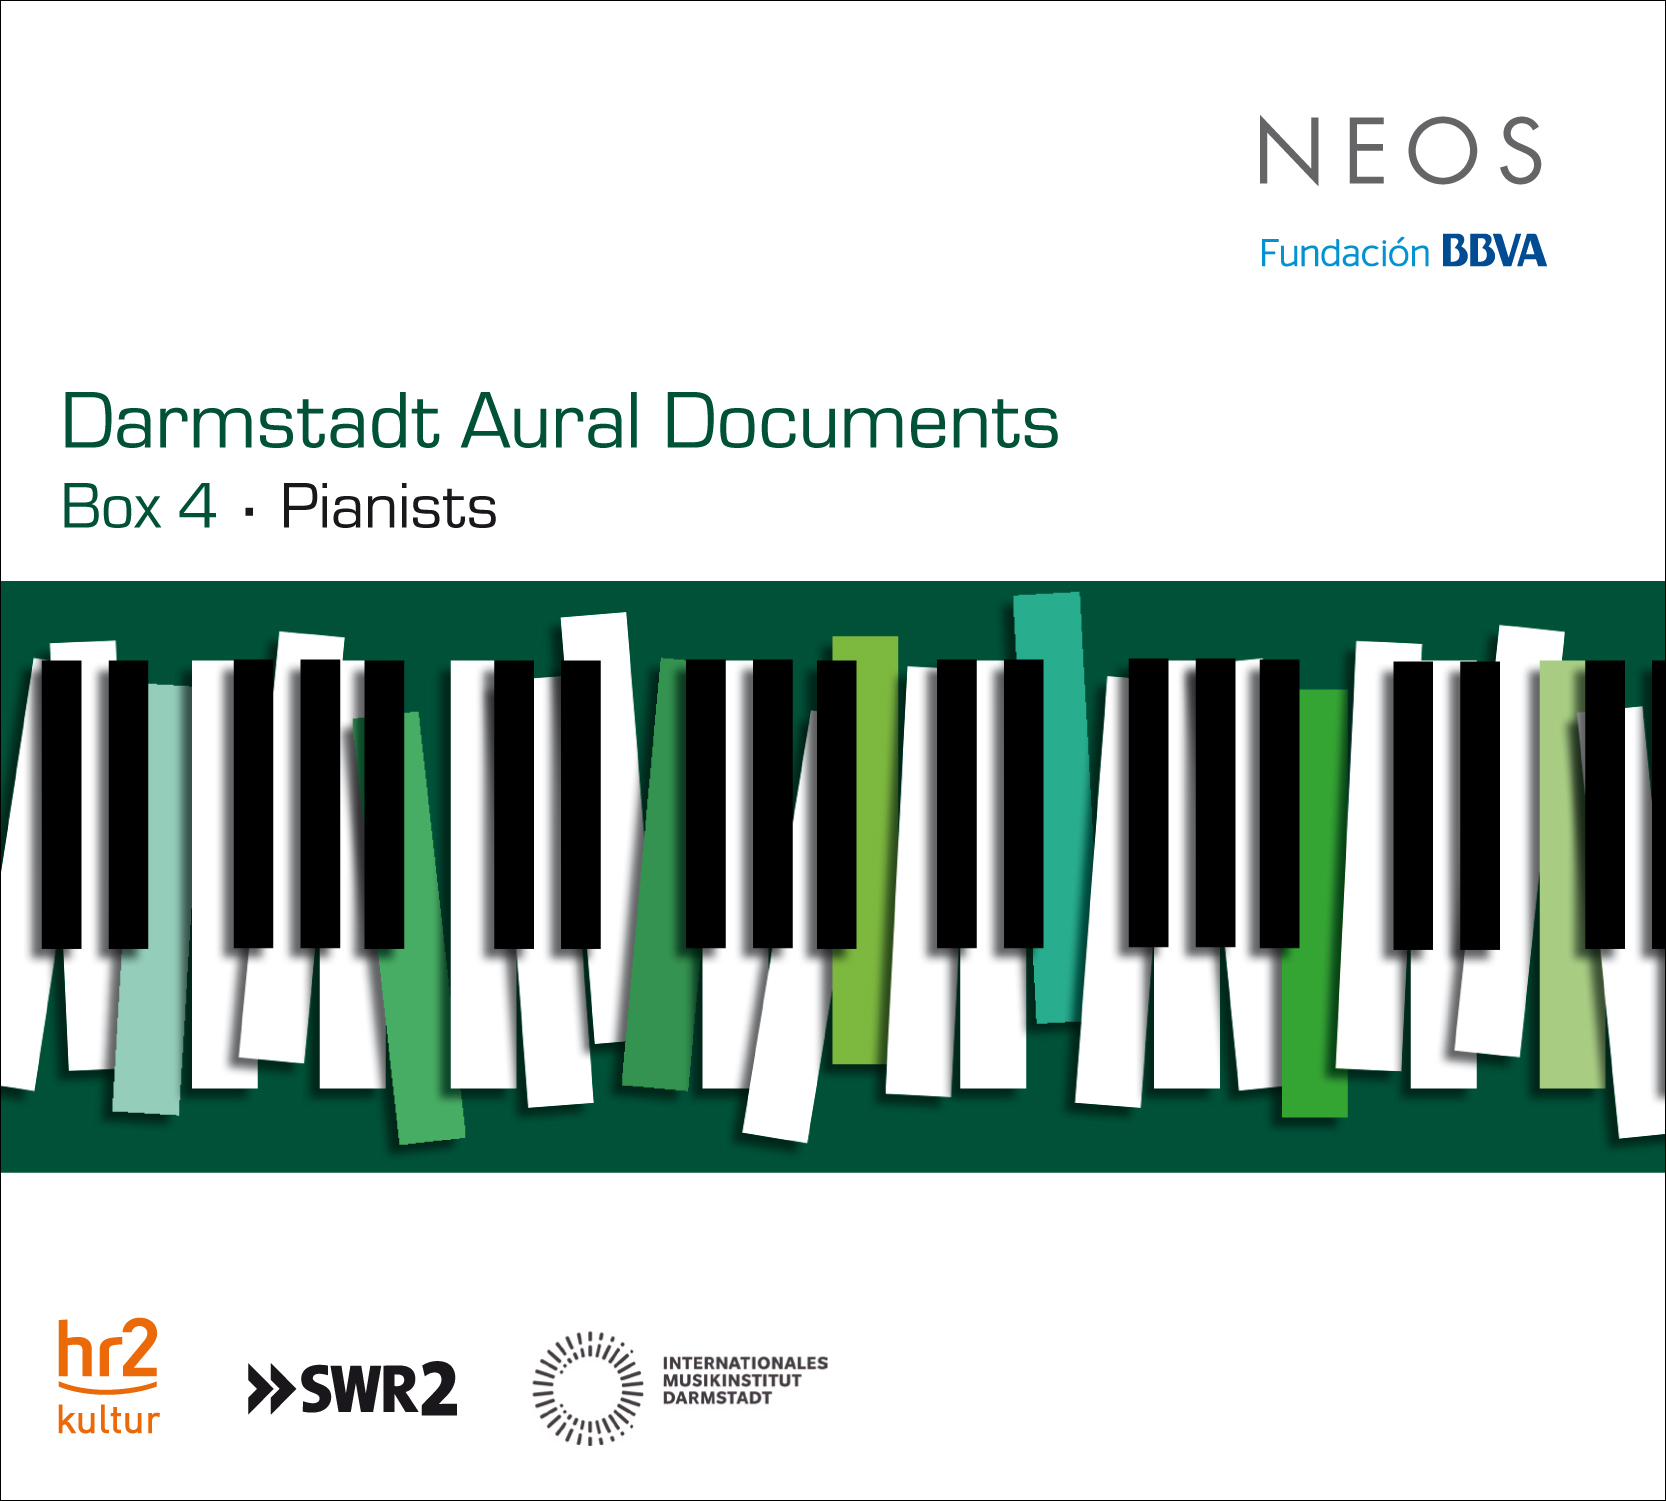 Darmstadt Aural Documents Box 4